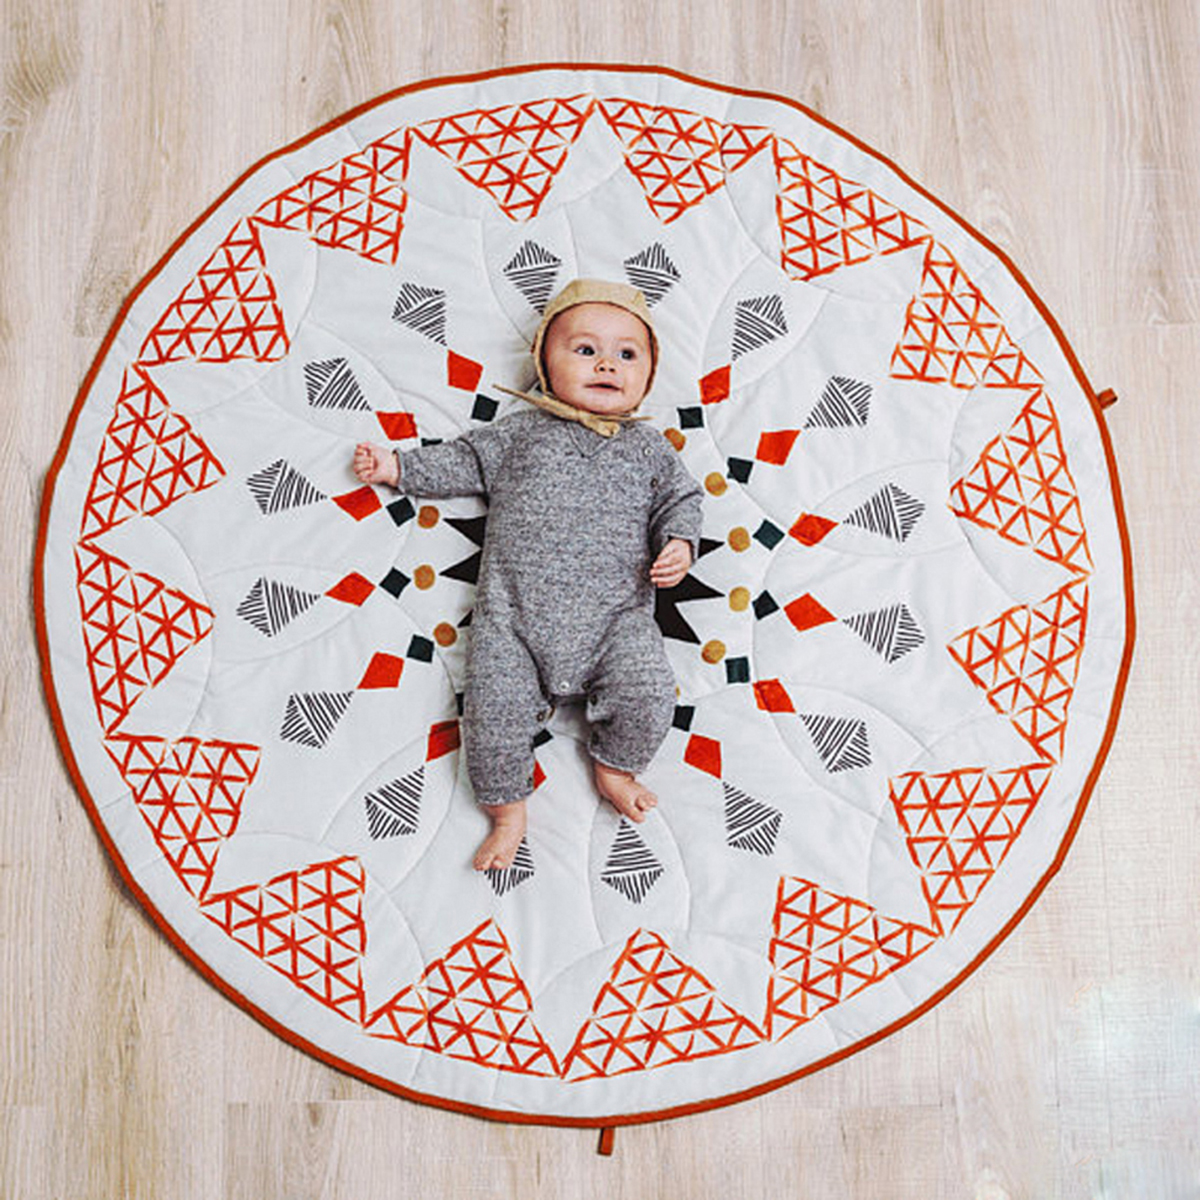 90cm Kids Play Mat Geometric Pattern Baby Crawling Pad Moroccan Style Floor Mat